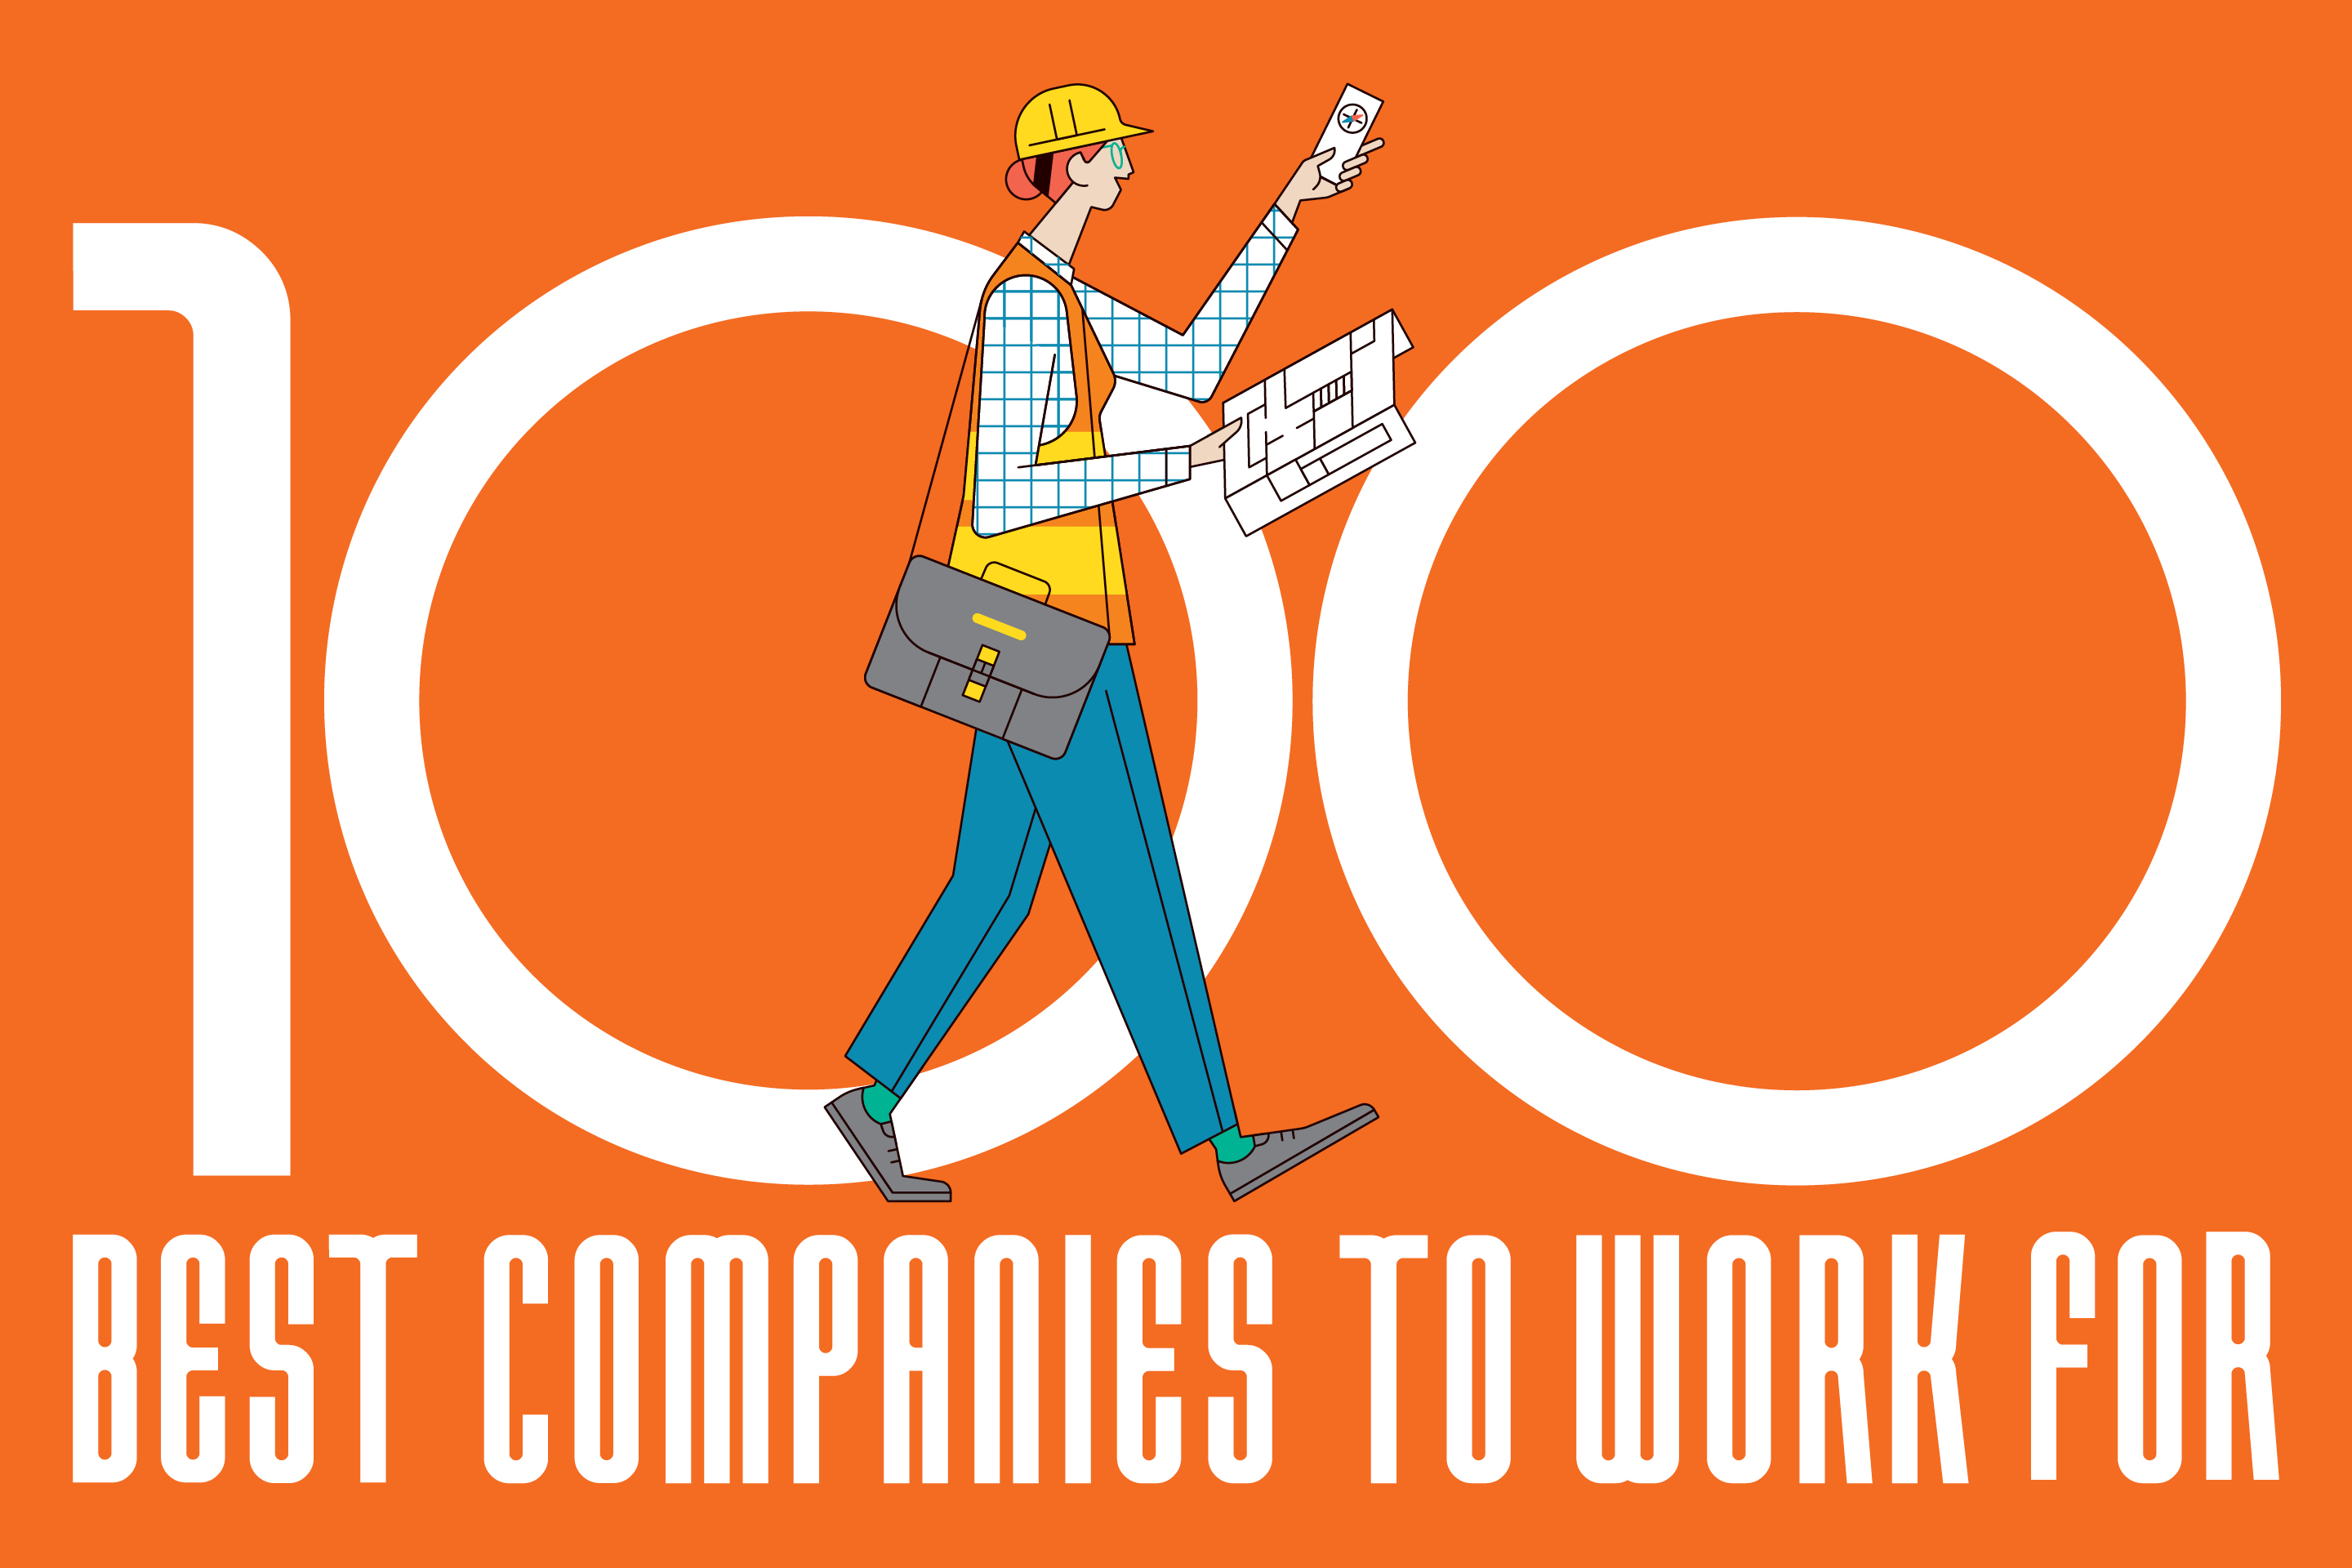 Best Companies to Work For 2019 logo